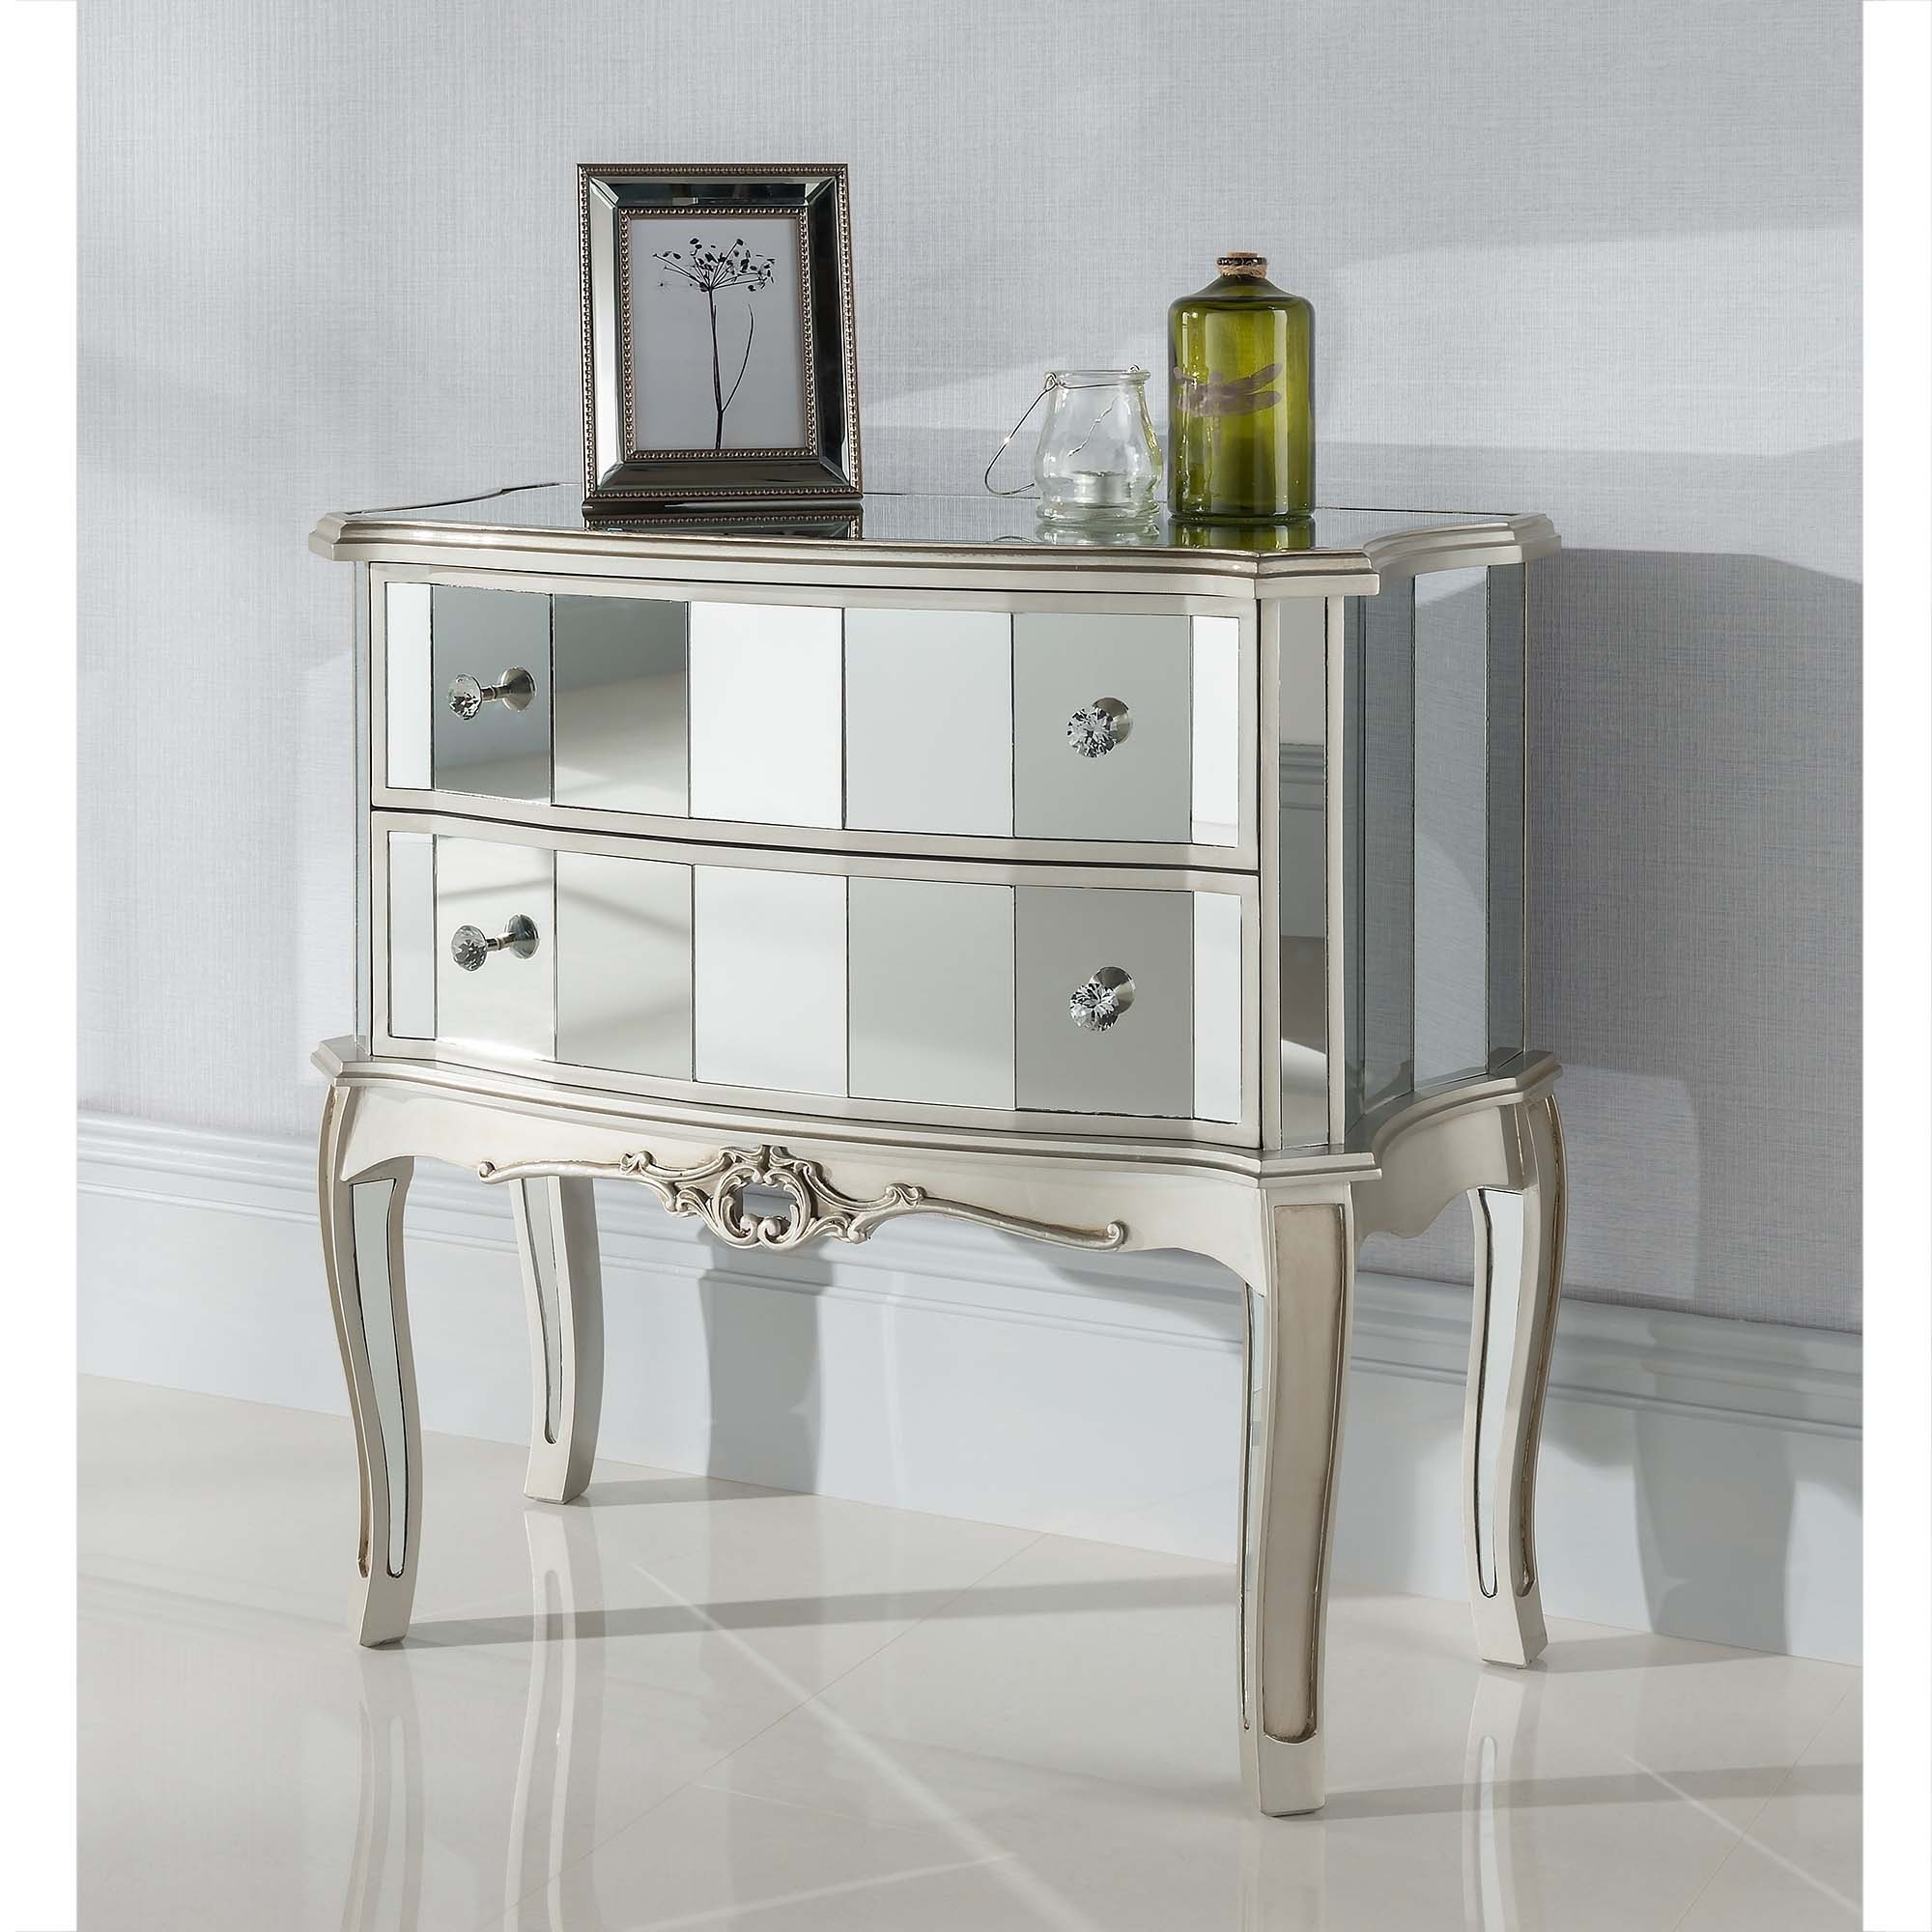 Argente Mirrored Antique French Chest Venetian Glass Furniture